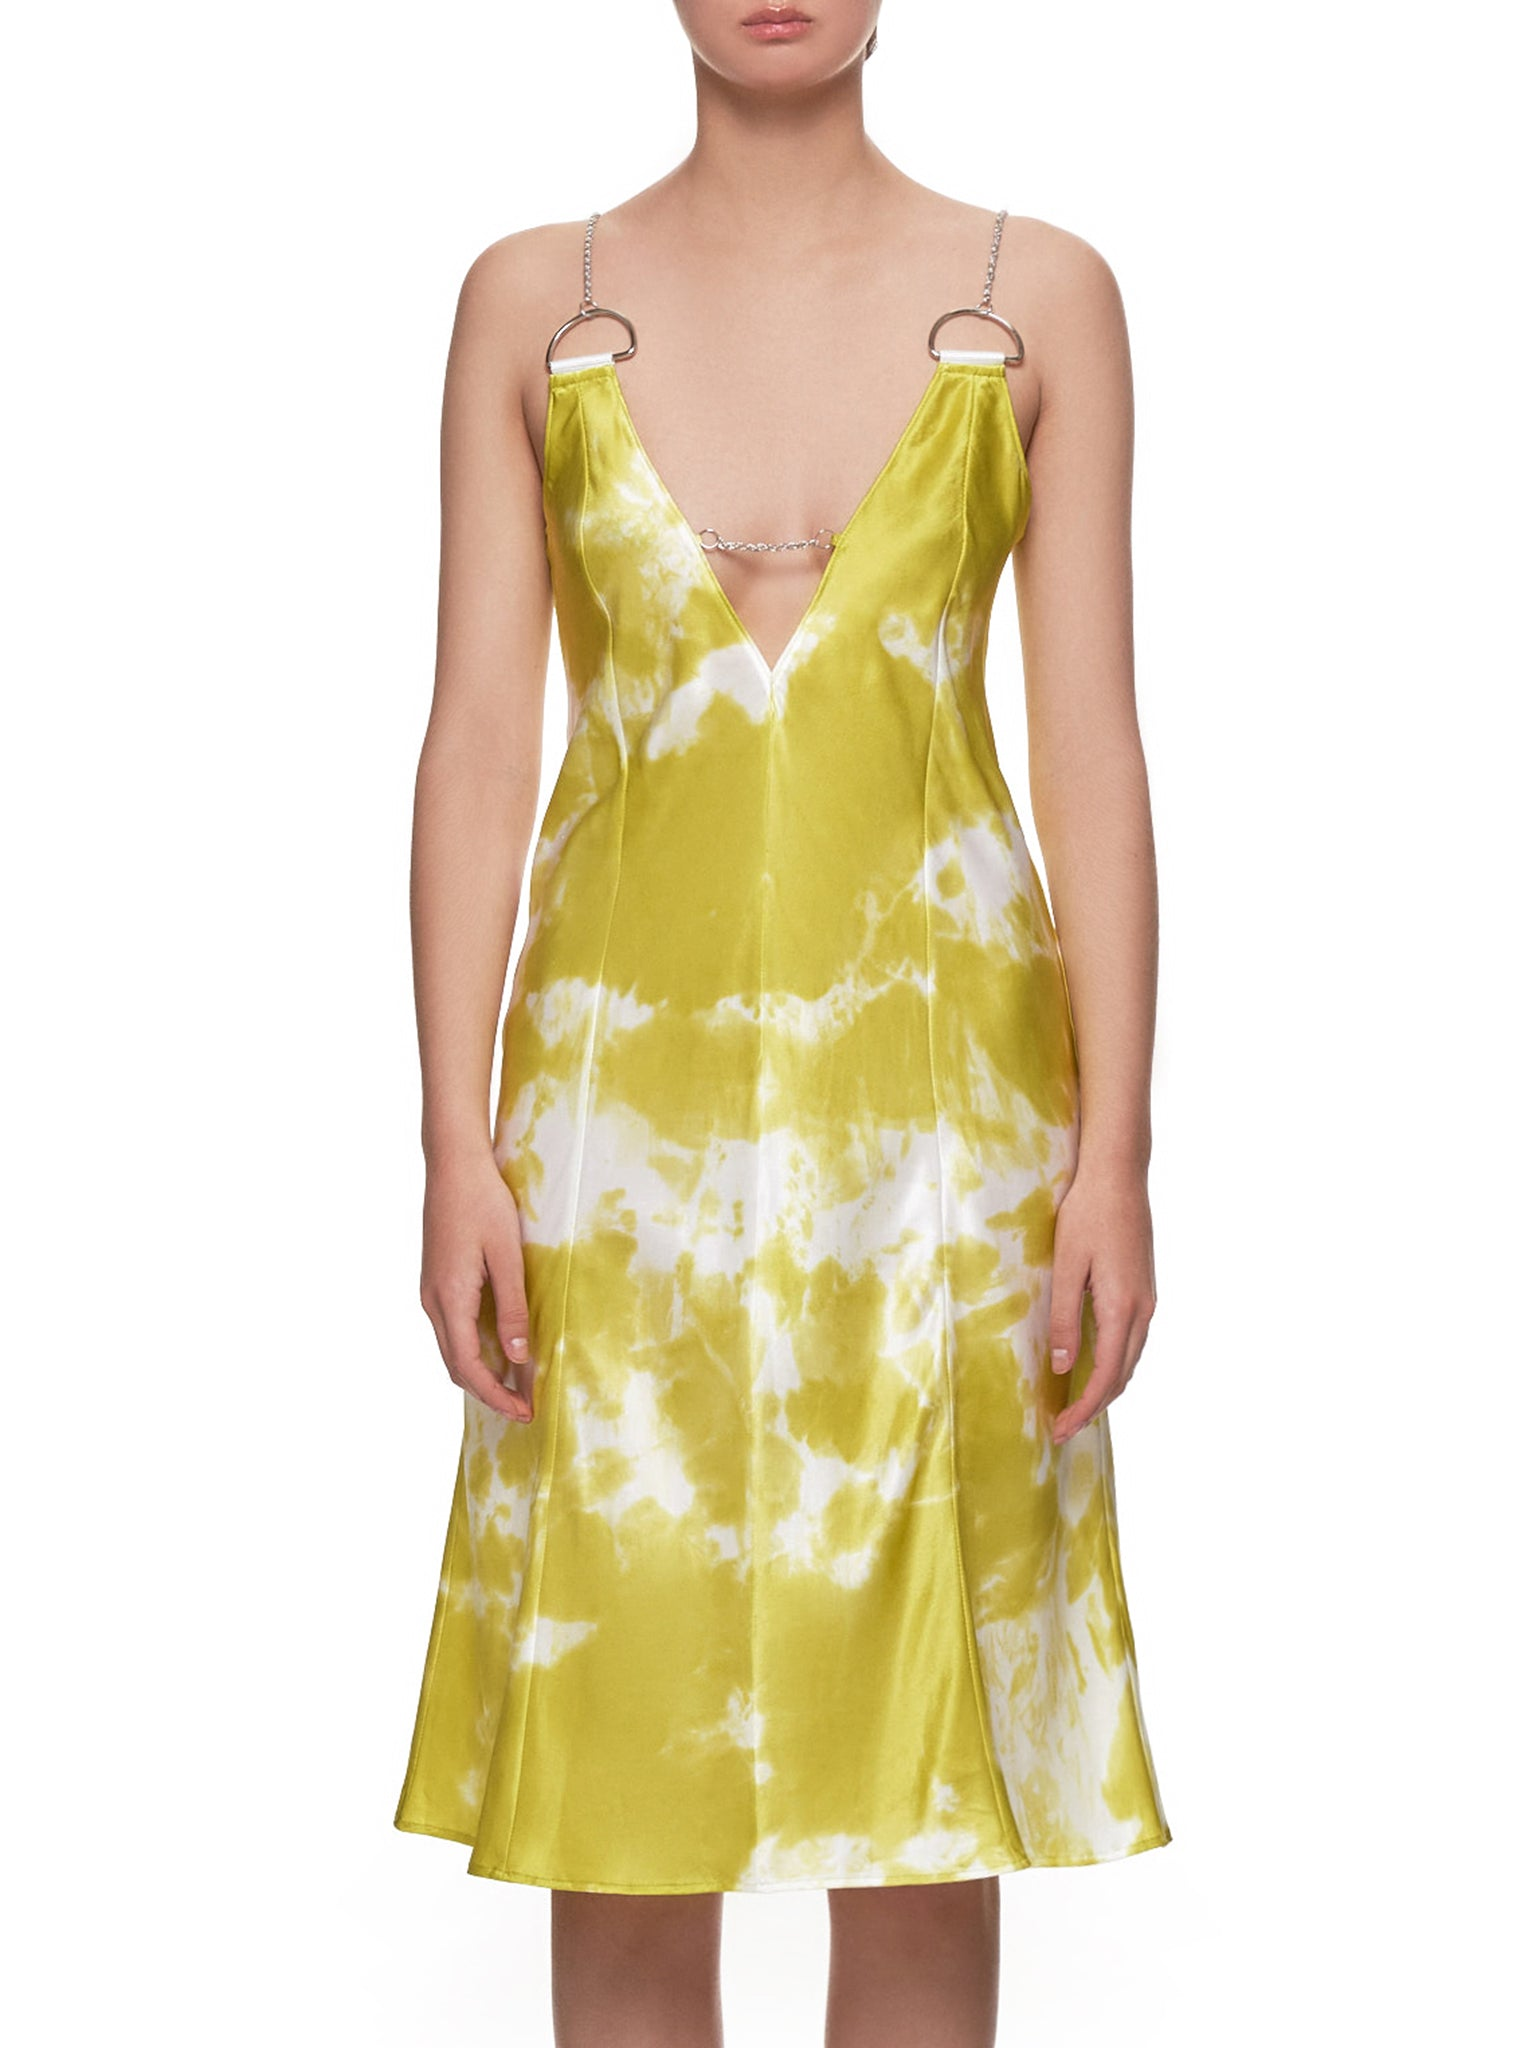 'Le Diamant' Dress (LE-DIAMANT-YELLOW-TIE-DYE)